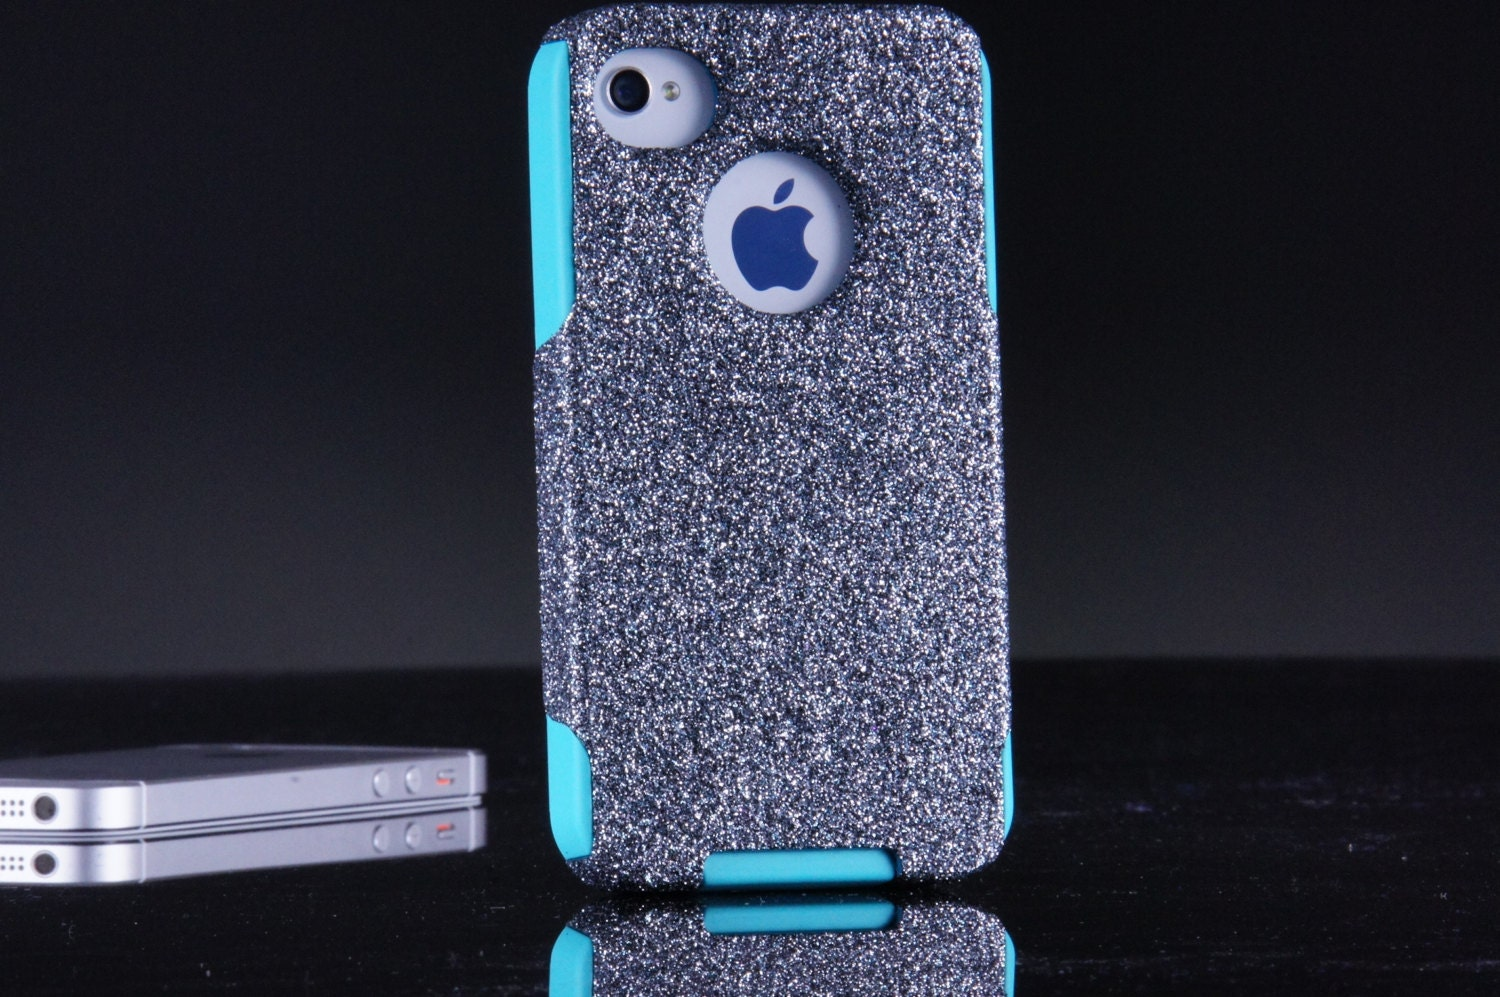 iphone 4 s cases otterbox custom iphone 4 glitter iphone 4s iphone 14398